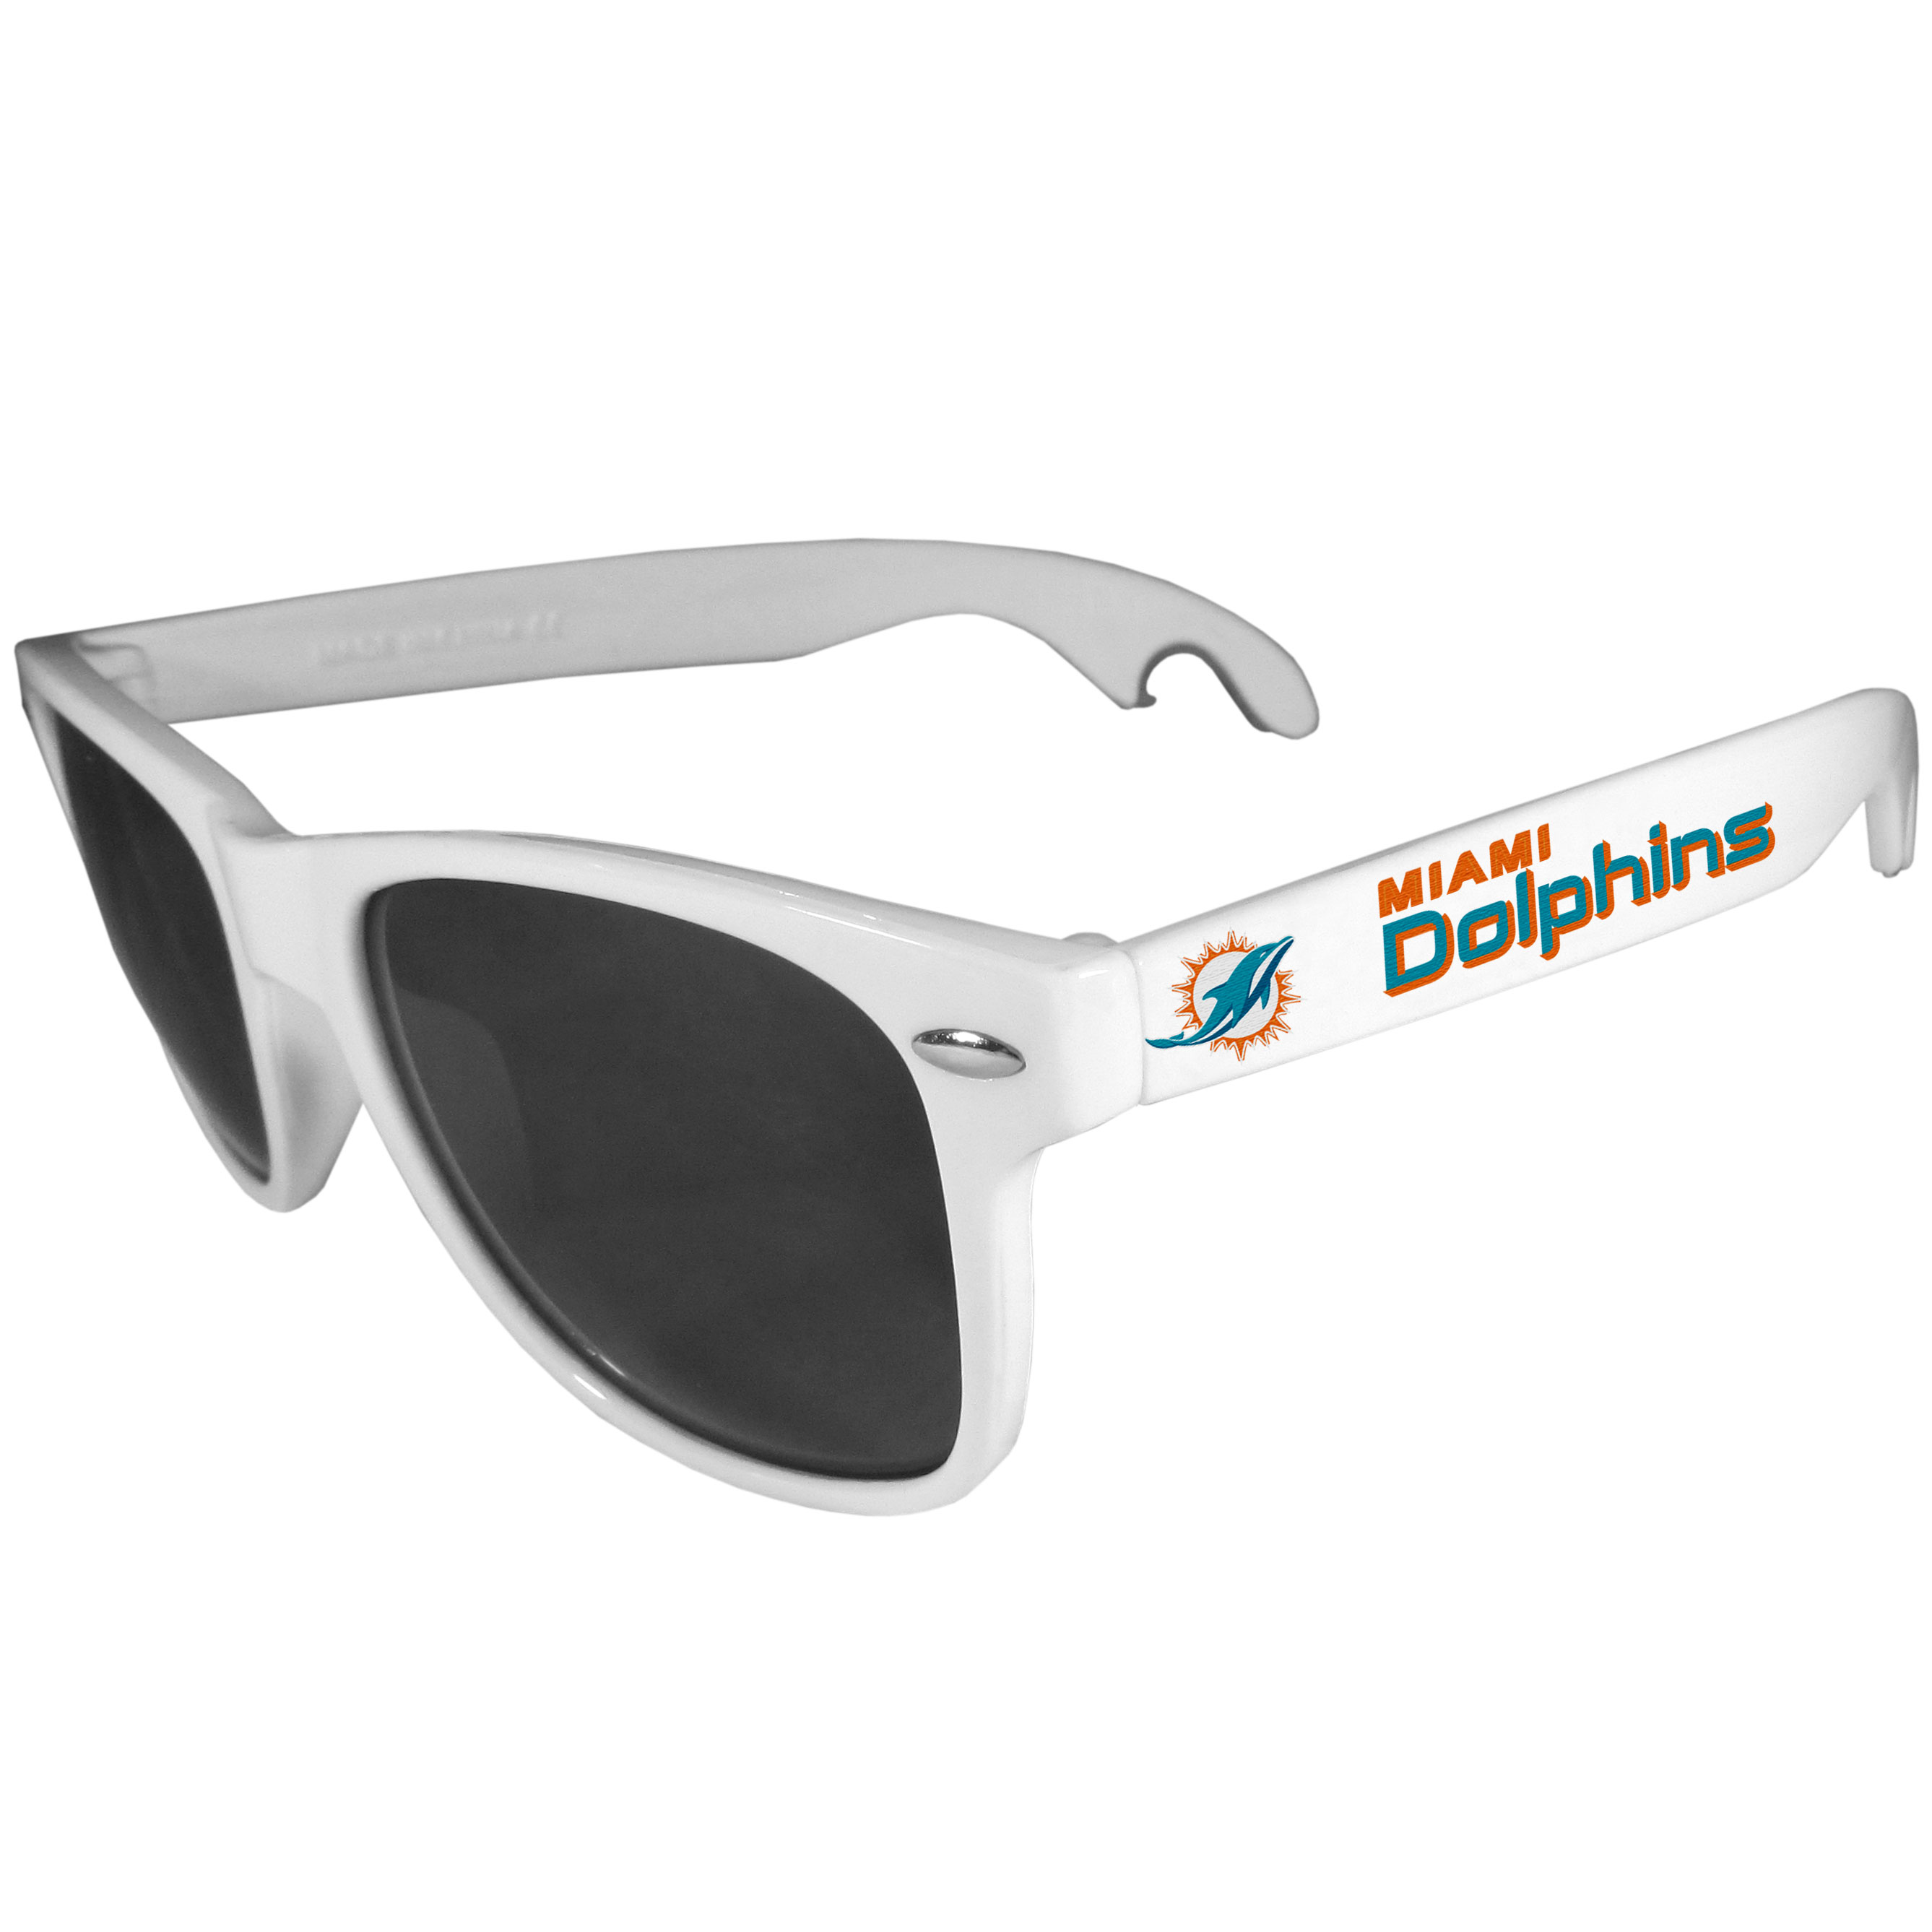 Miami Dolphins Beachfarer Bottle Opener Sunglasses, White - Seriously, these sunglasses open bottles! Keep the party going with these amazing Miami Dolphins bottle opener sunglasses. The stylish retro frames feature team designs on the arms and functional bottle openers on the end of the arms. Whether you are at the beach or having a backyard BBQ on game day, these shades will keep your eyes protected with 100% UVA/UVB protection and keep you hydrated with the handy bottle opener arms.